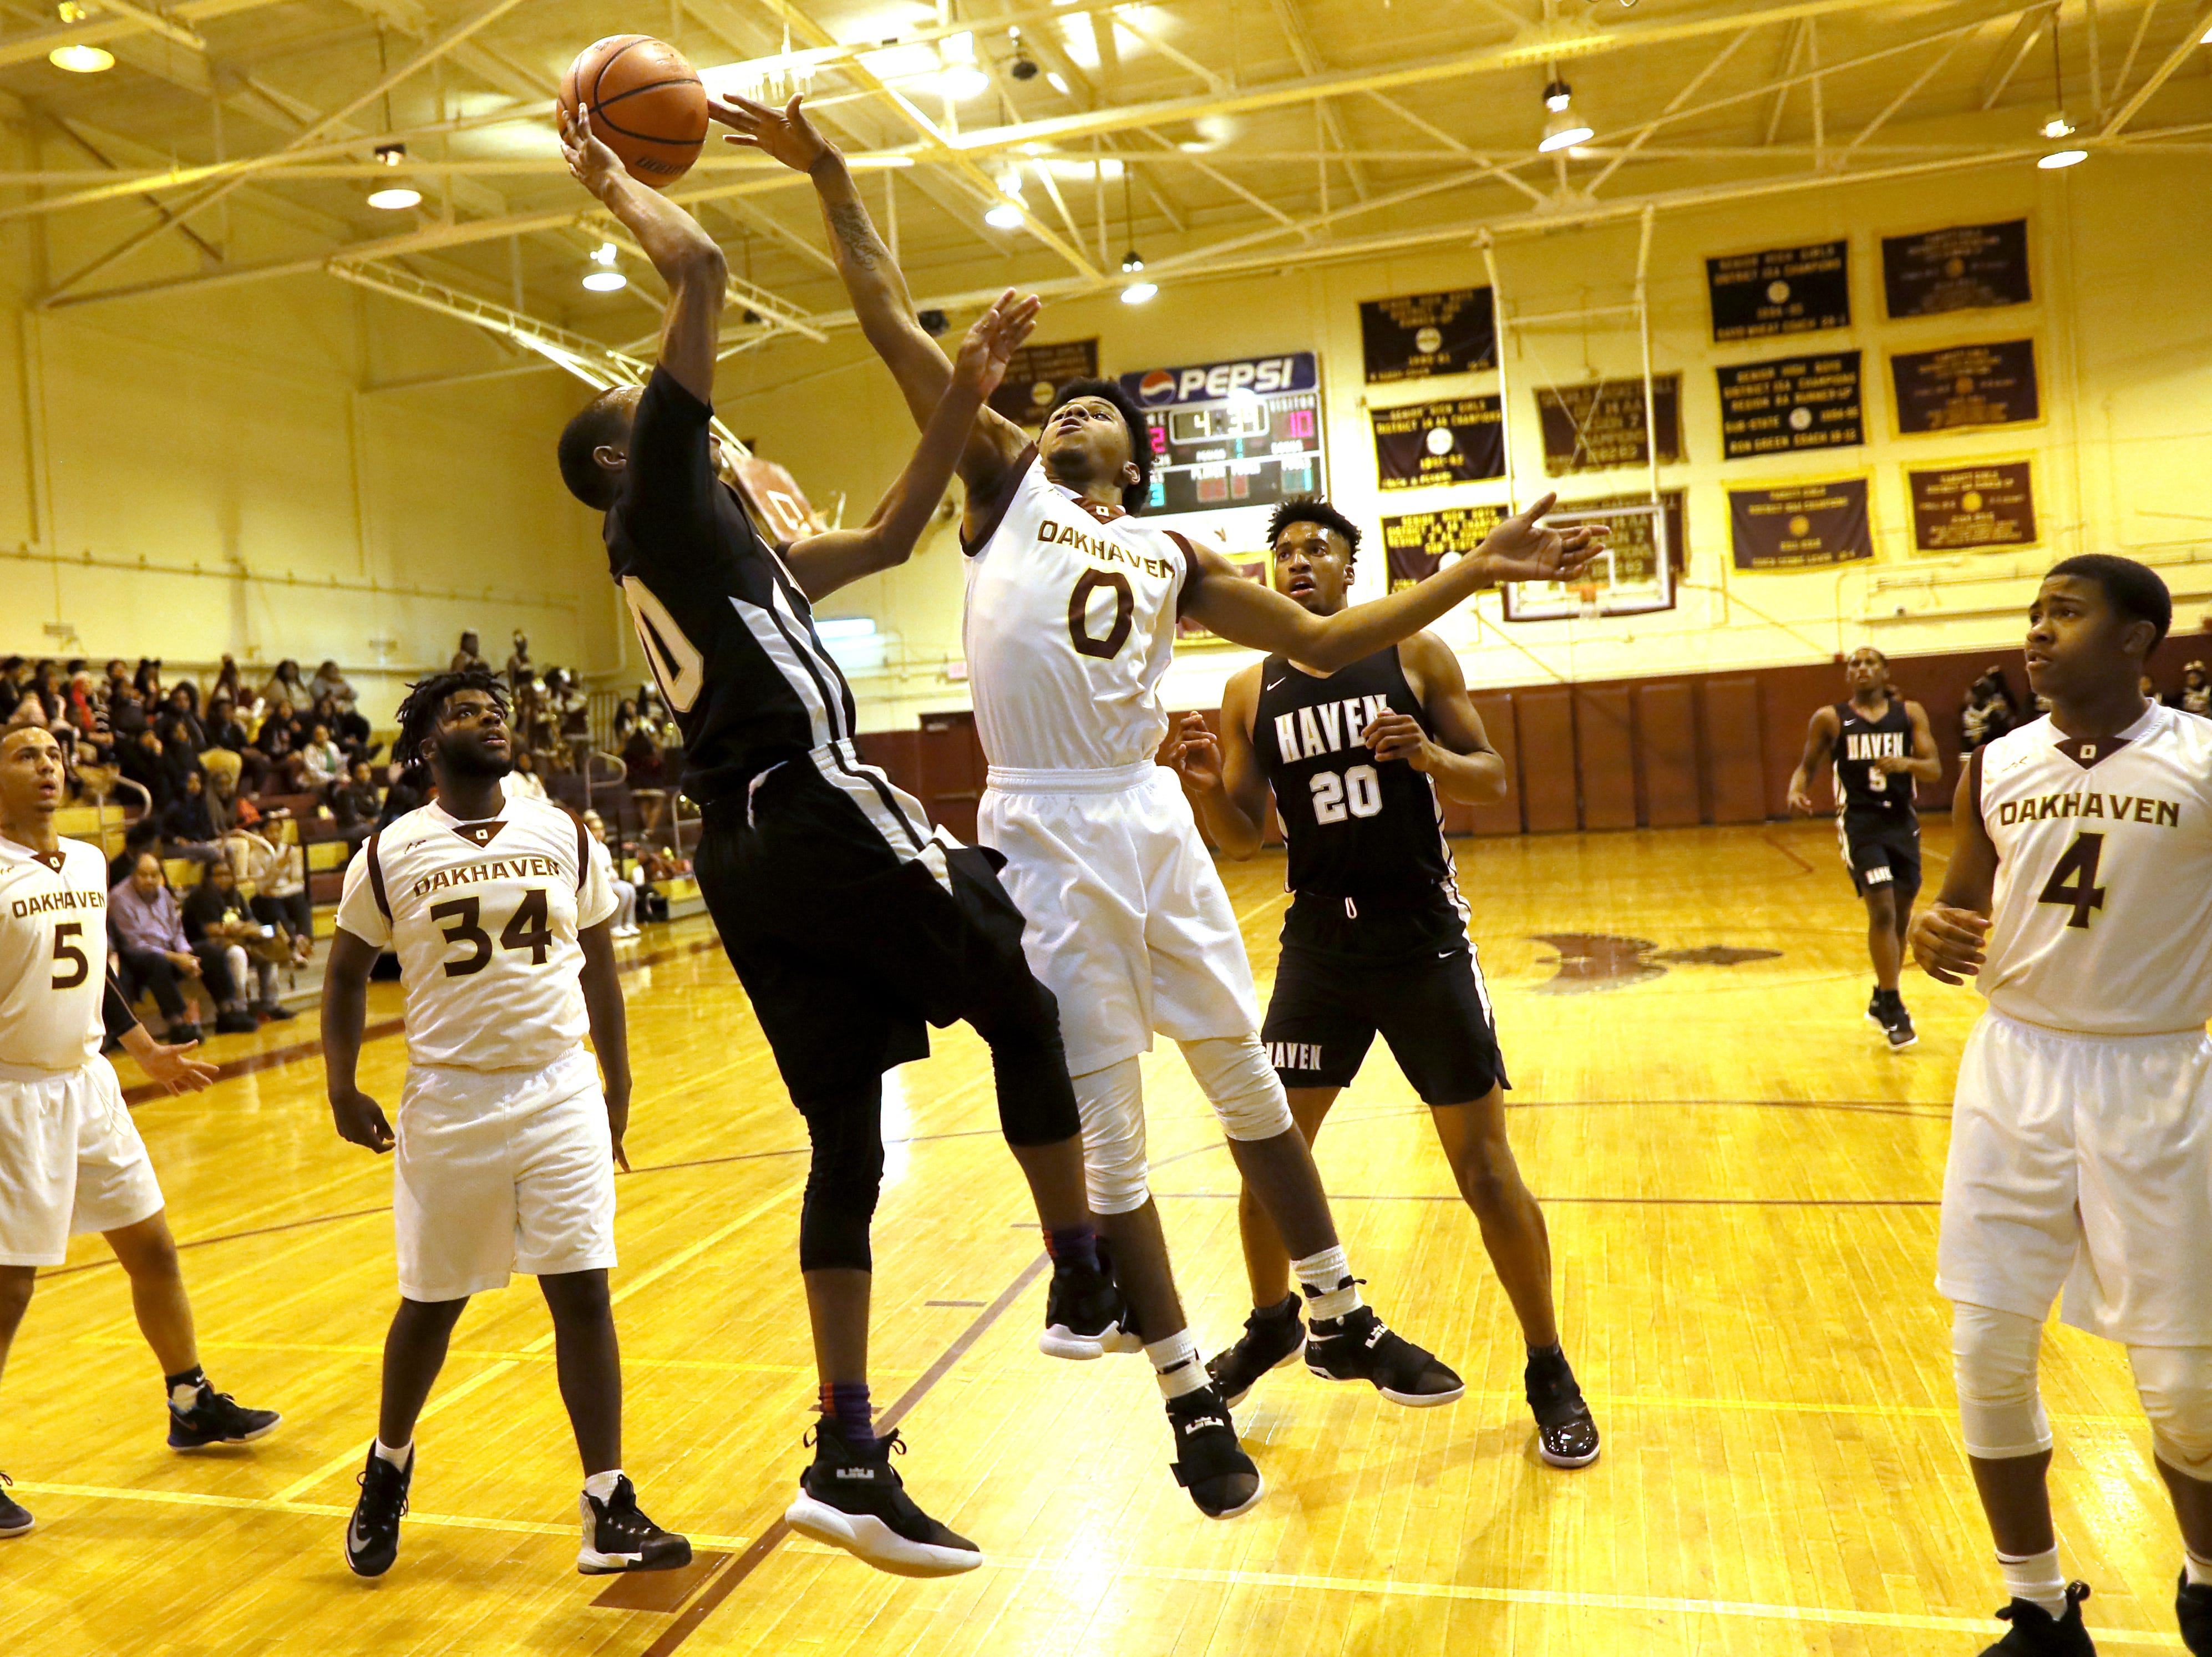 Whitehaven's Antnarn Smith is blocked on a shot attempt by Oakhaven's Rod Brown during their game at Oakhaven High School on Thursday, Jan. 10, 2019.